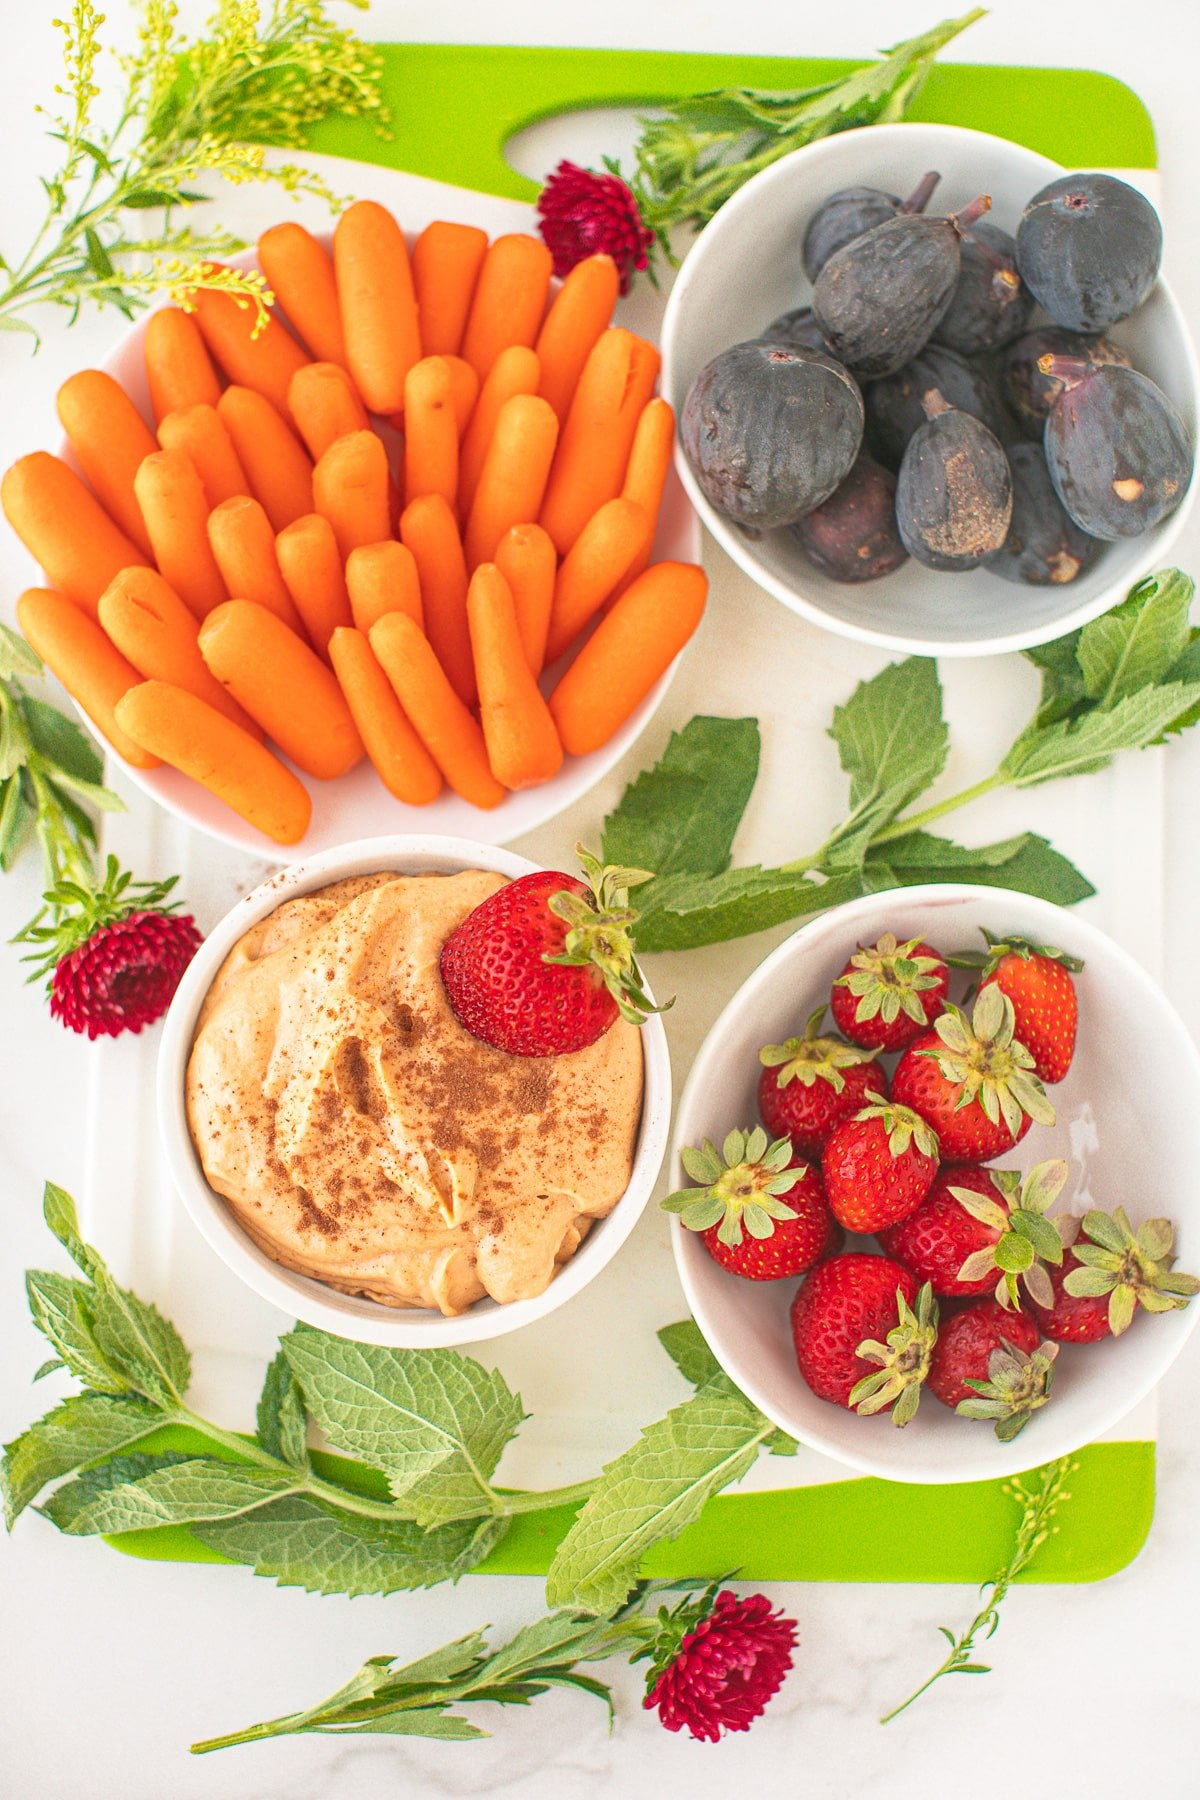 dip served with baby carrots, strawberries, and figs